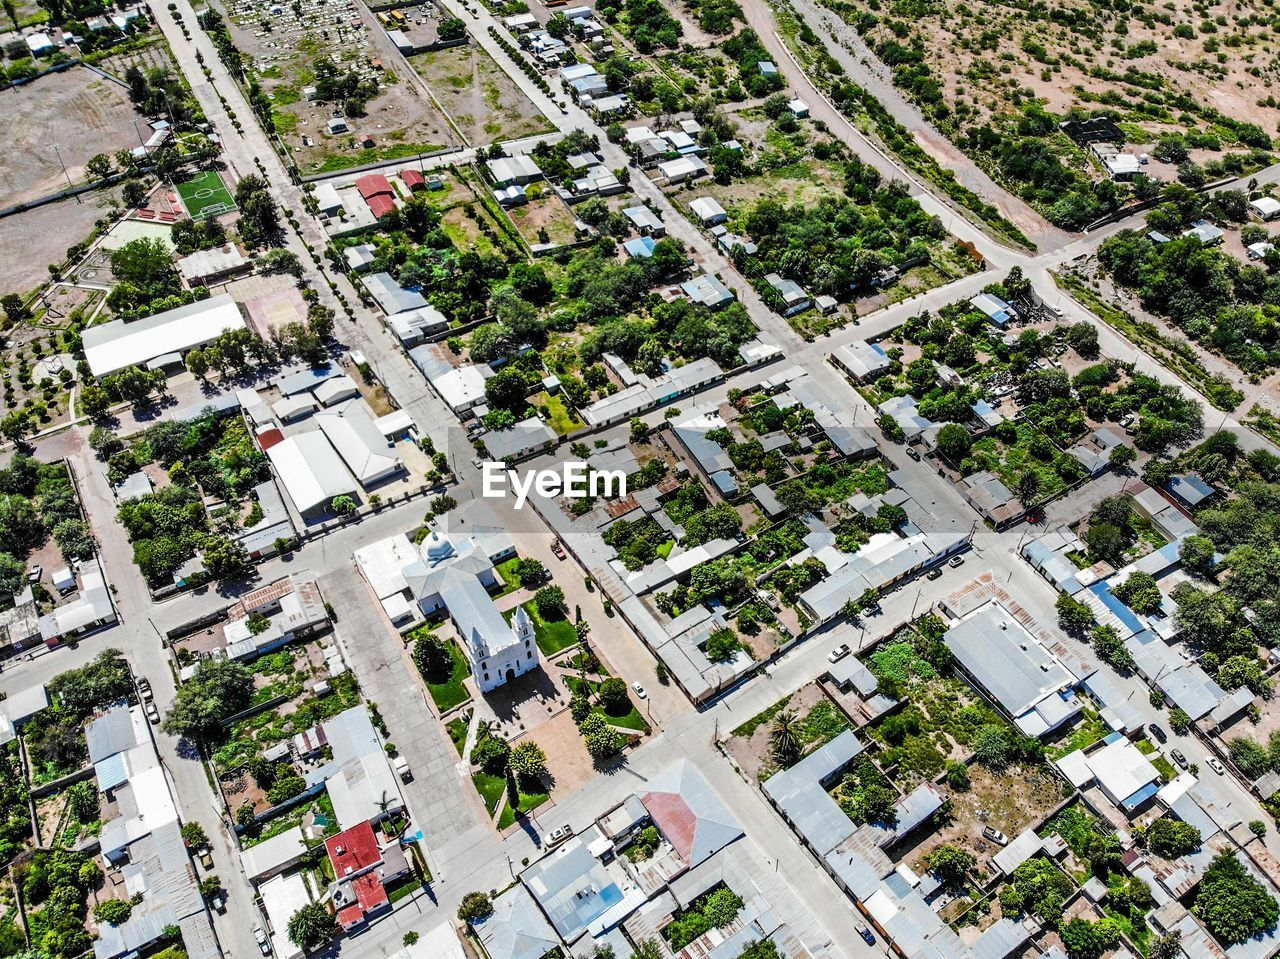 high angle view, built structure, architecture, aerial view, building exterior, city, plant, day, building, tree, nature, no people, full frame, transportation, outdoors, road, residential district, street, growth, environment, cityscape